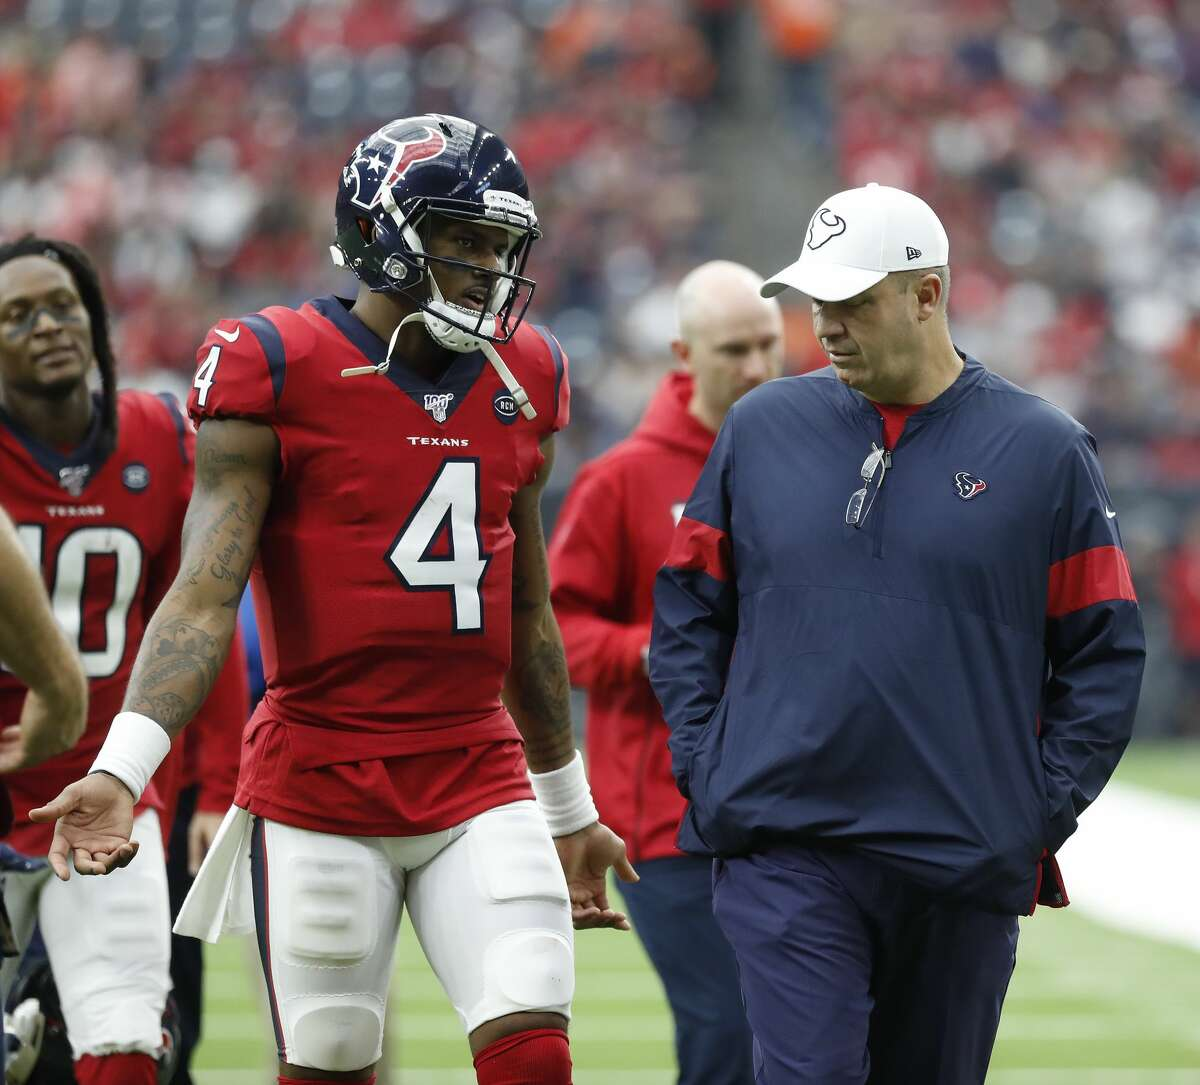 The Texans' first touchdown Sunday came when they were trailing the Broncos 38-3 in the third quarter, but Bill O'Brien defended the unit's performance Monday.